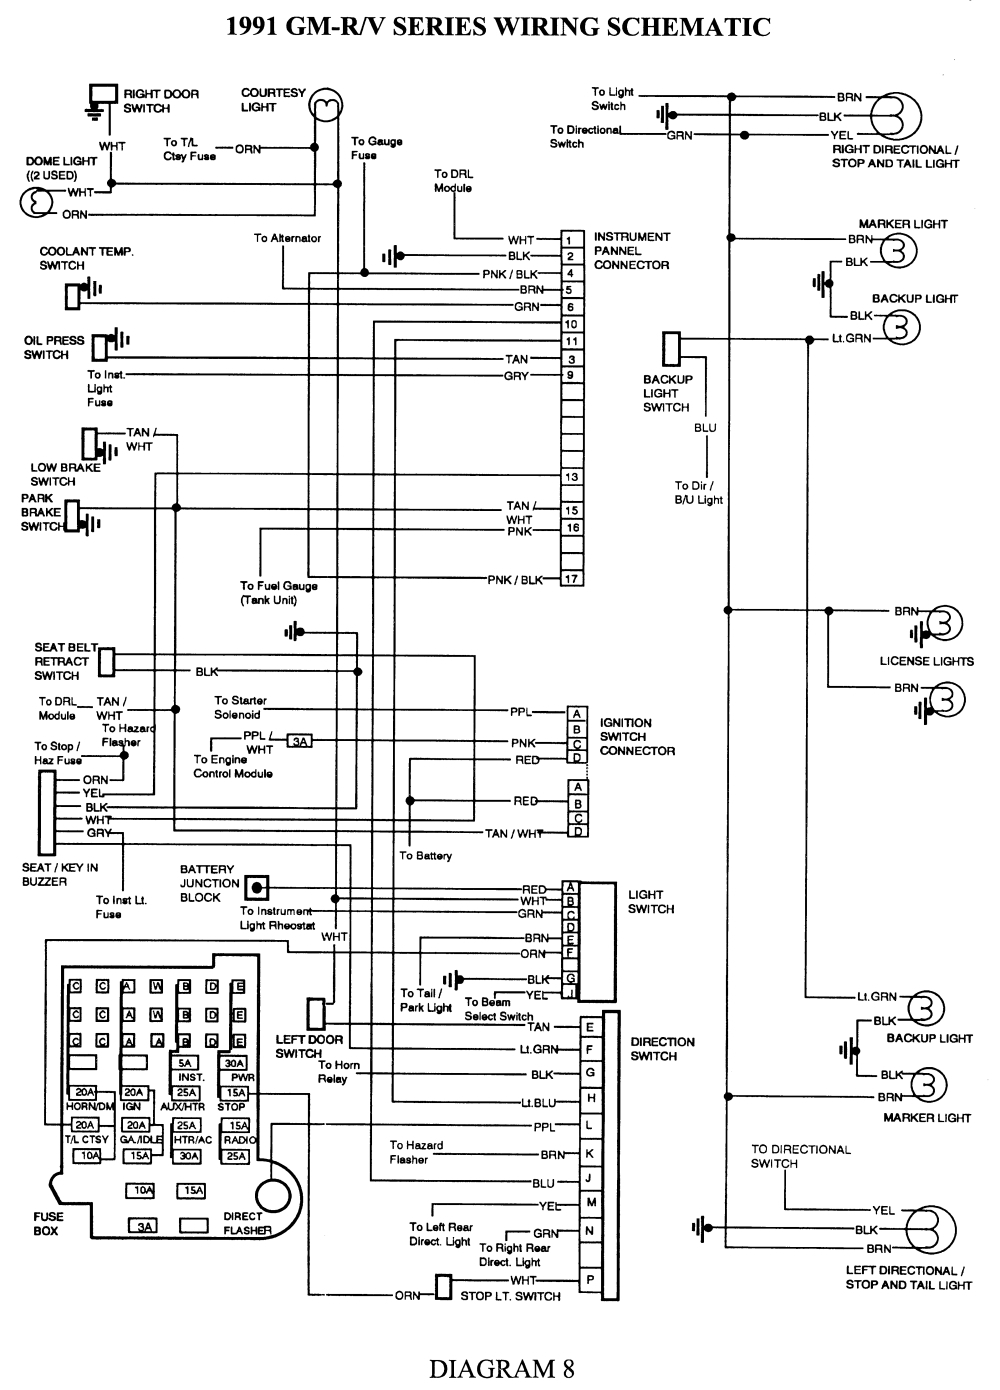 [DIAGRAM] 04 Trailblazer Wiring Diagram FULL Version HD